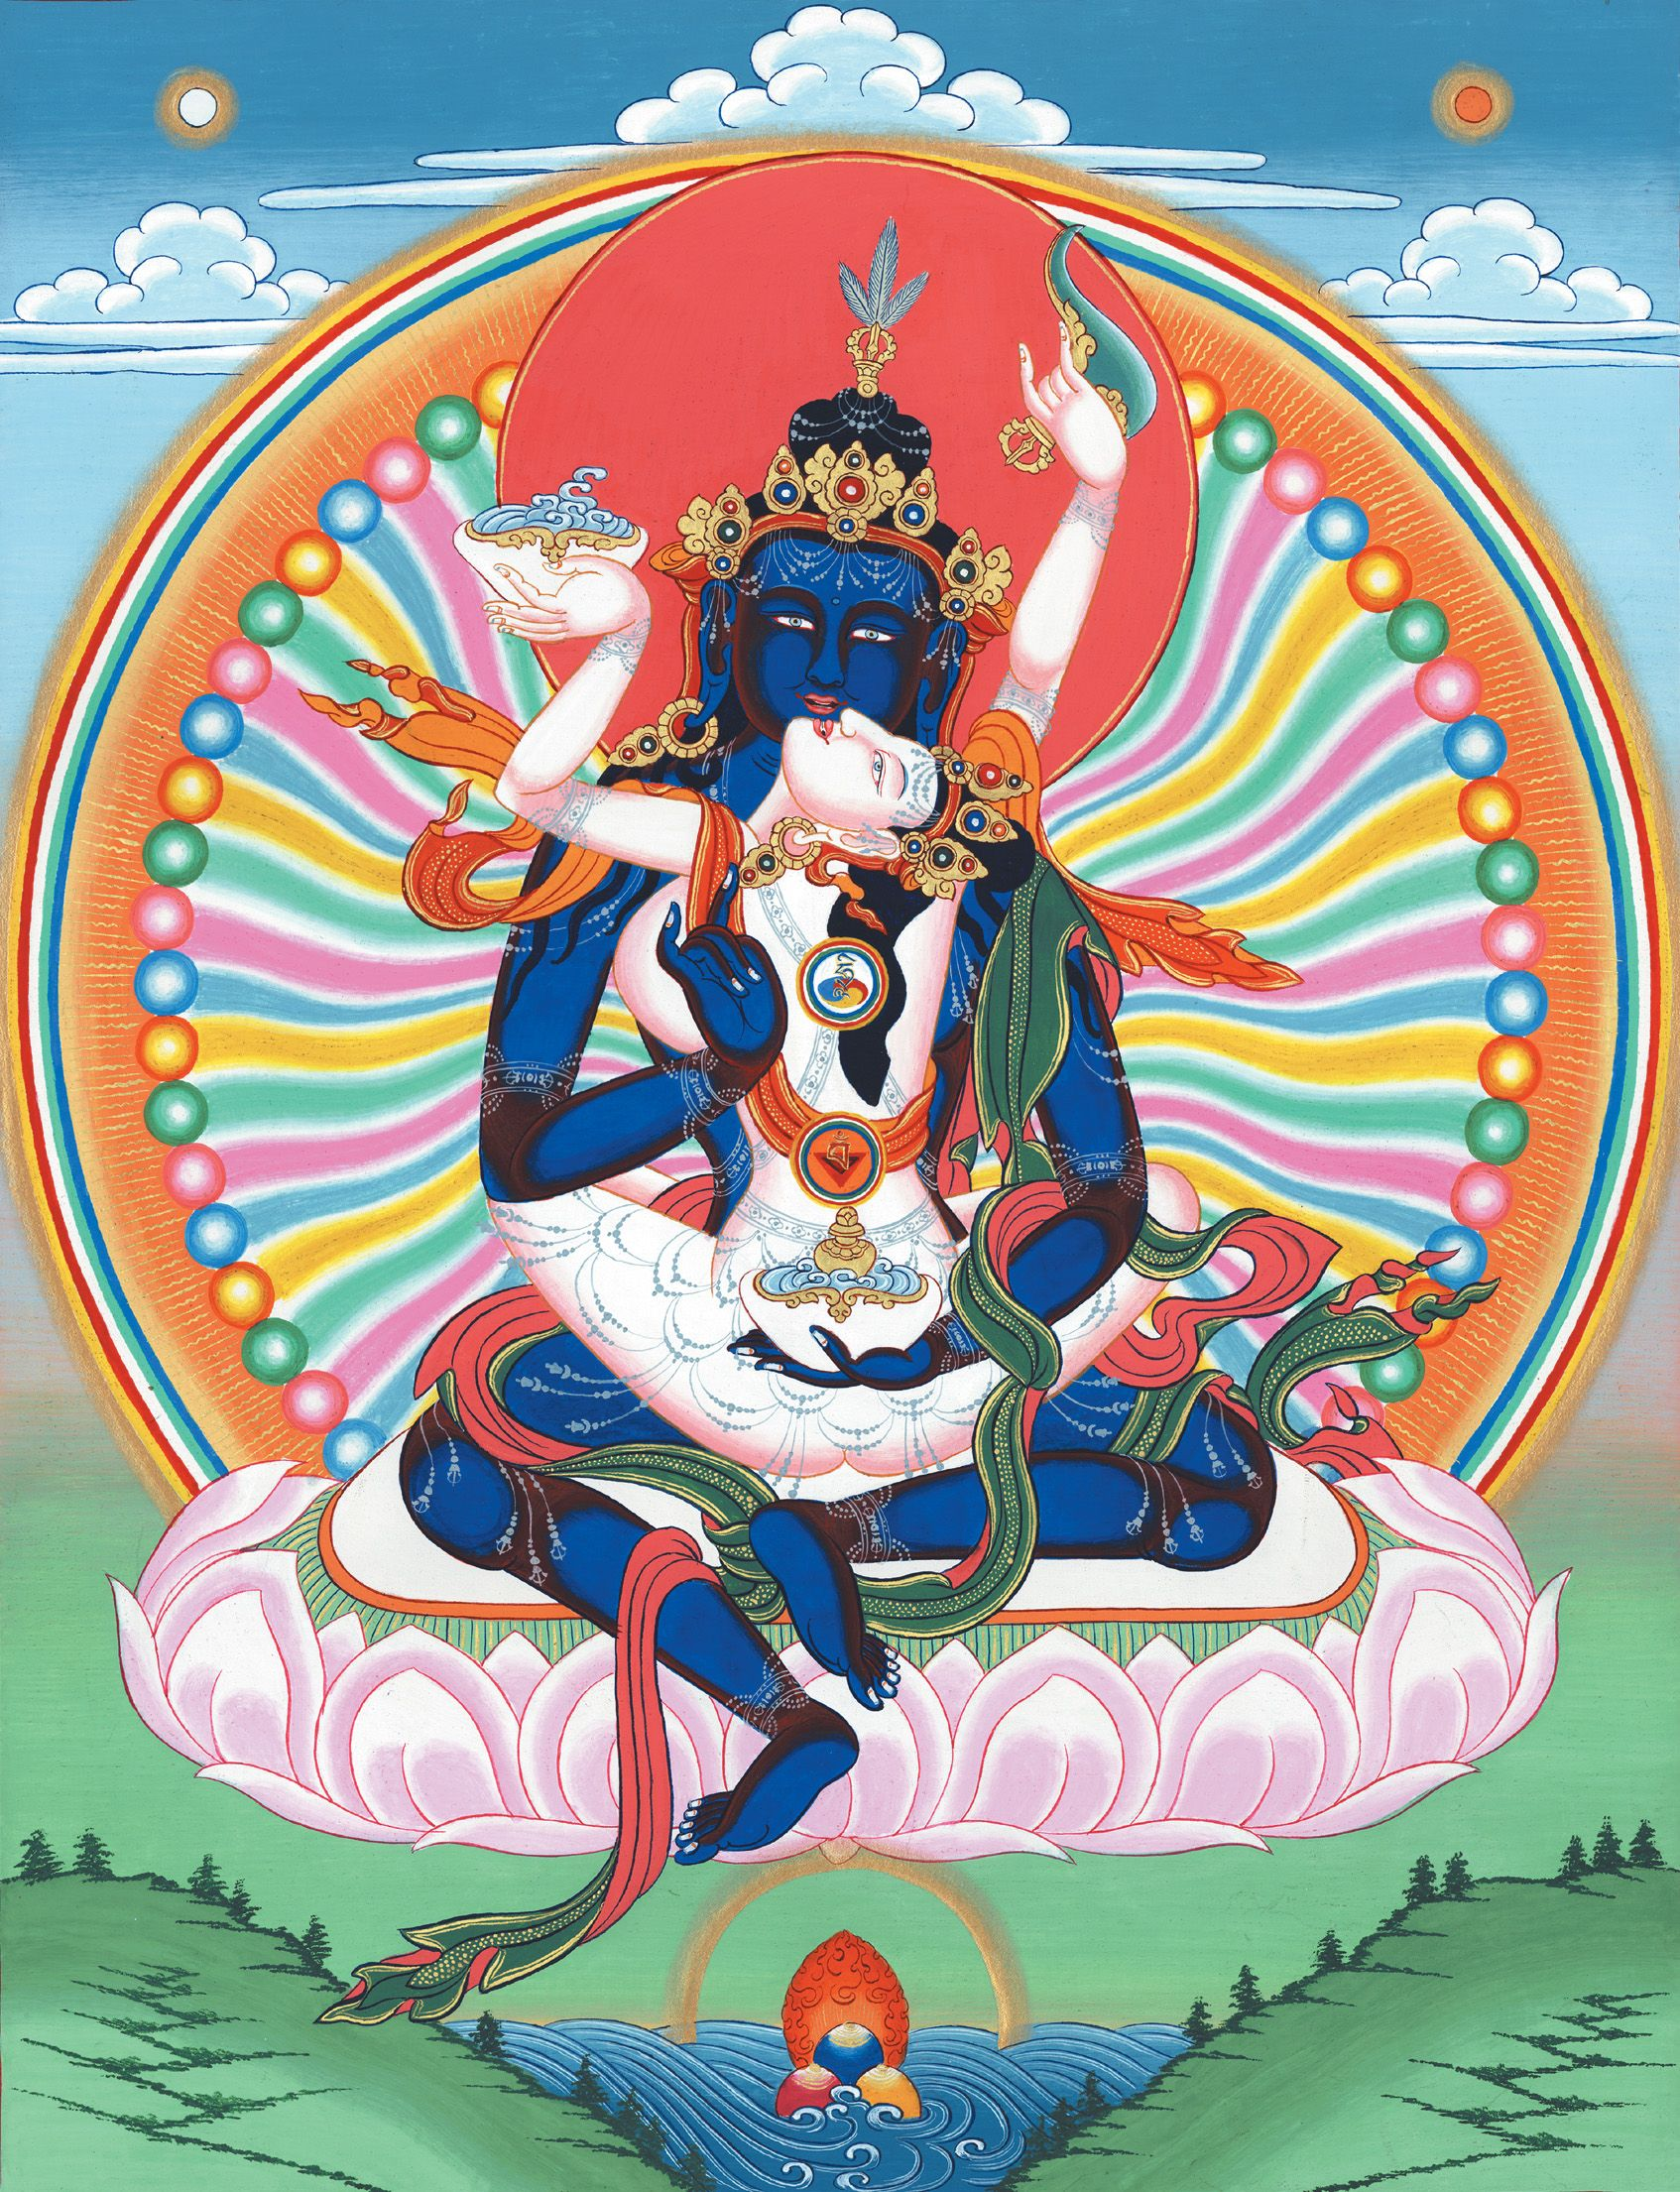 Samantabhadra (blue buddha) and Samantabhadri (white consort) in yabyum.